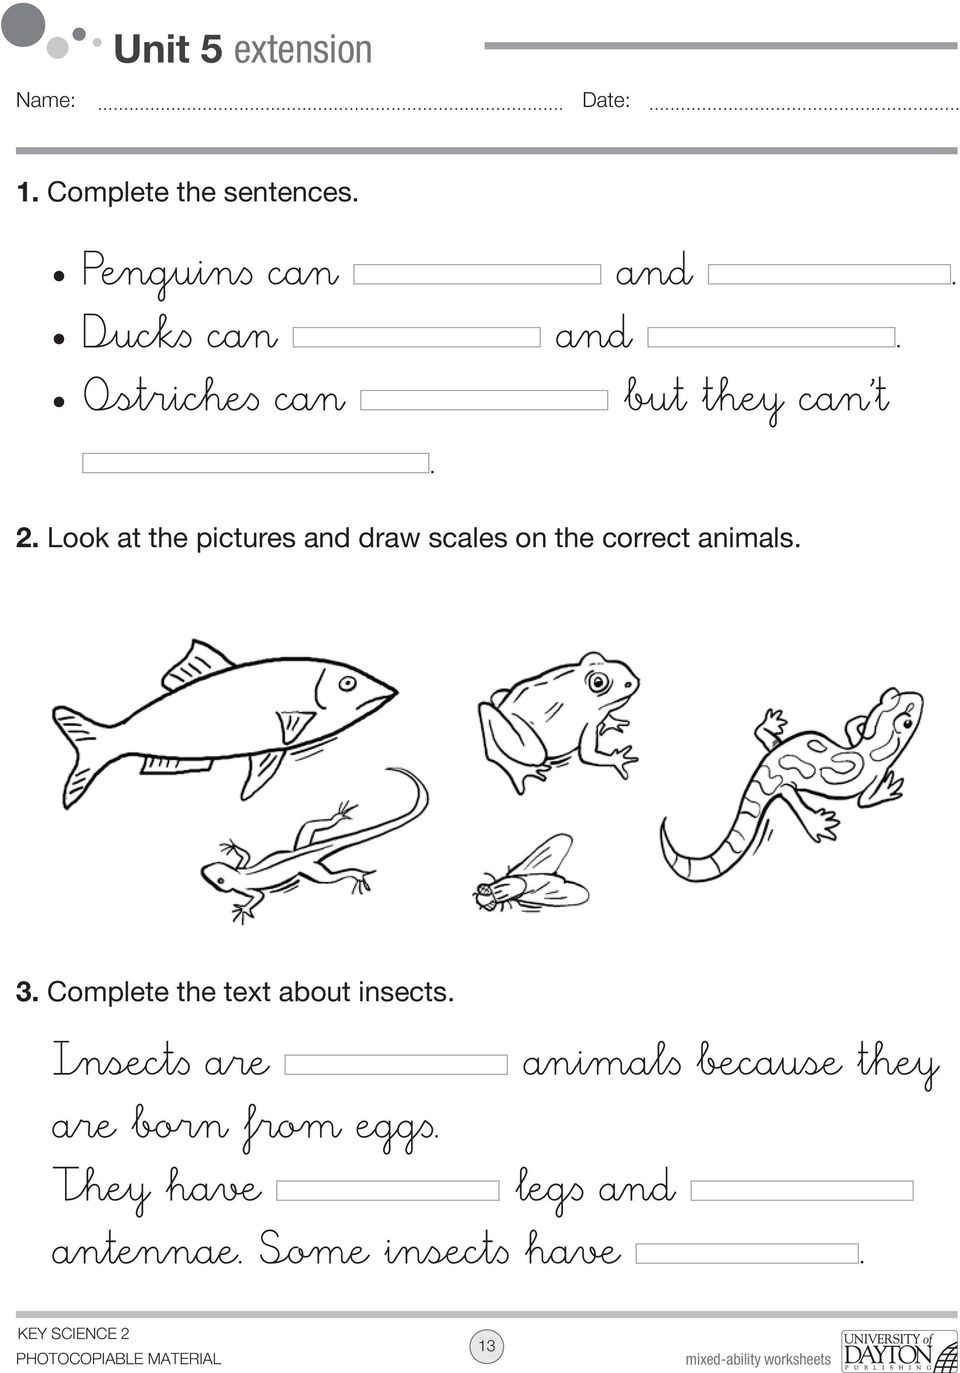 Look at the pictures and draw scales on the correct animals. 3.